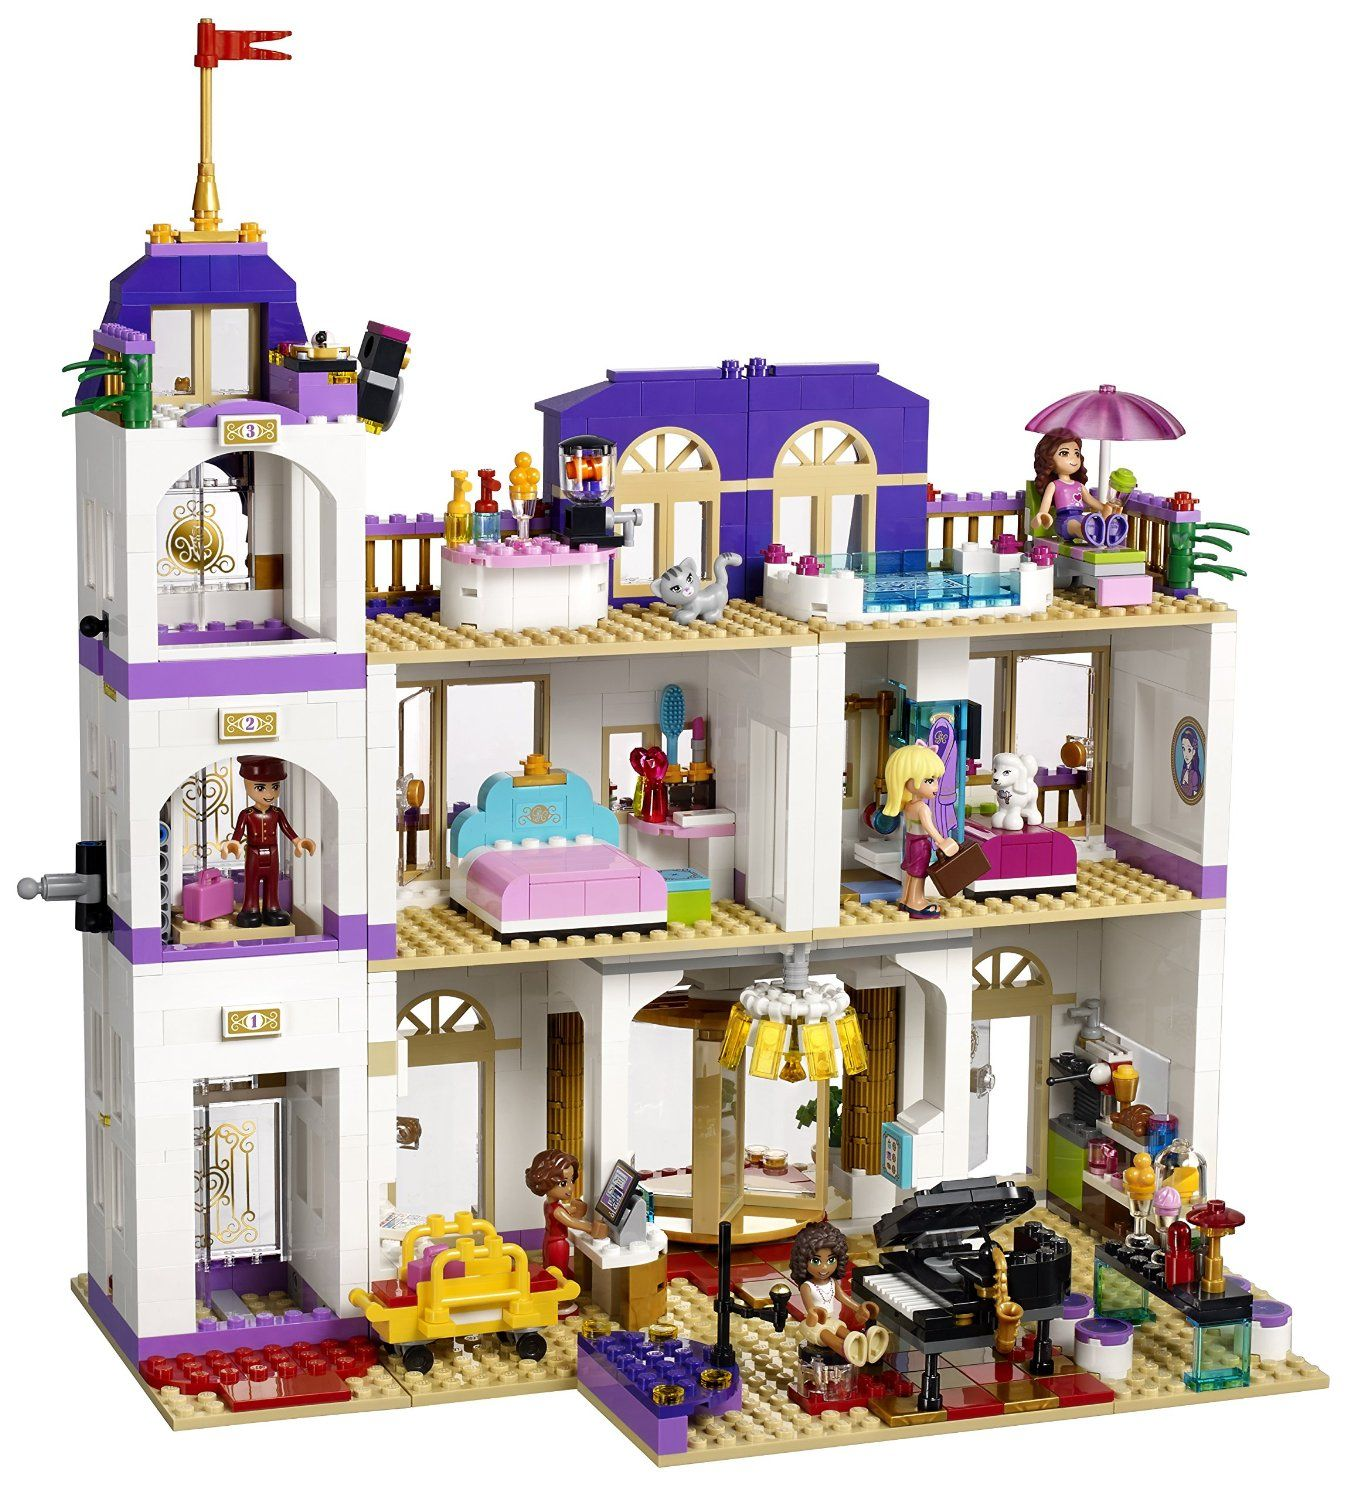 Robot Check Lego Friends Lego Lovers Lego Friends Sets